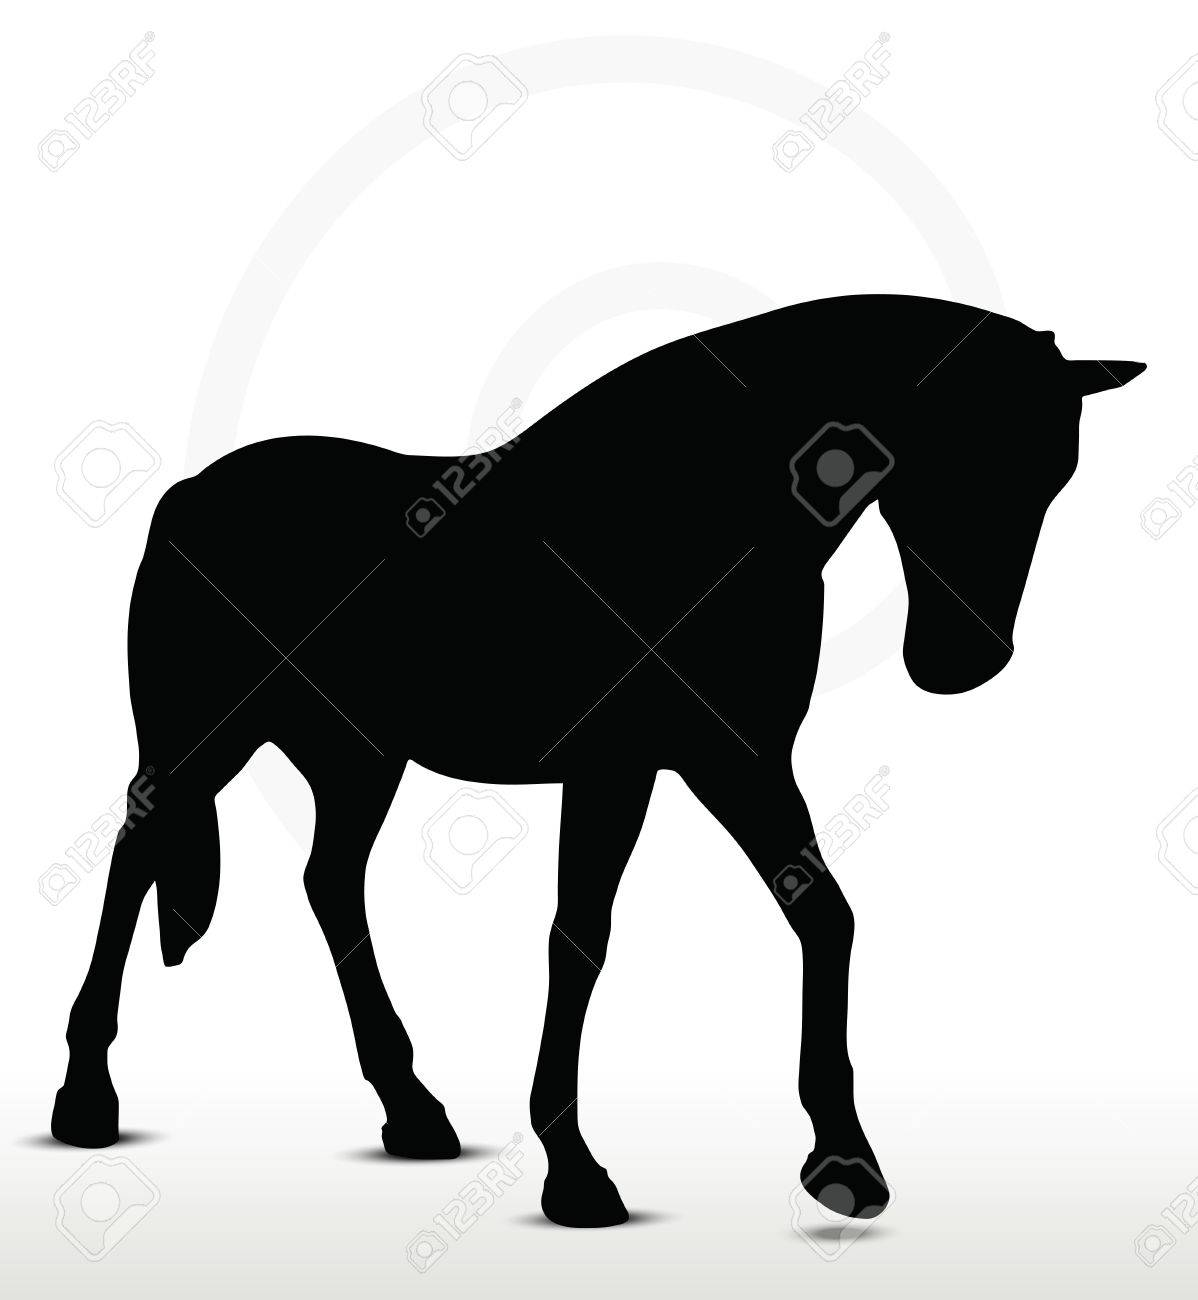 Horse Silhouette In Walking Head Down Position Royalty Free Cliparts Vectors And Stock Illustration Image 29208563